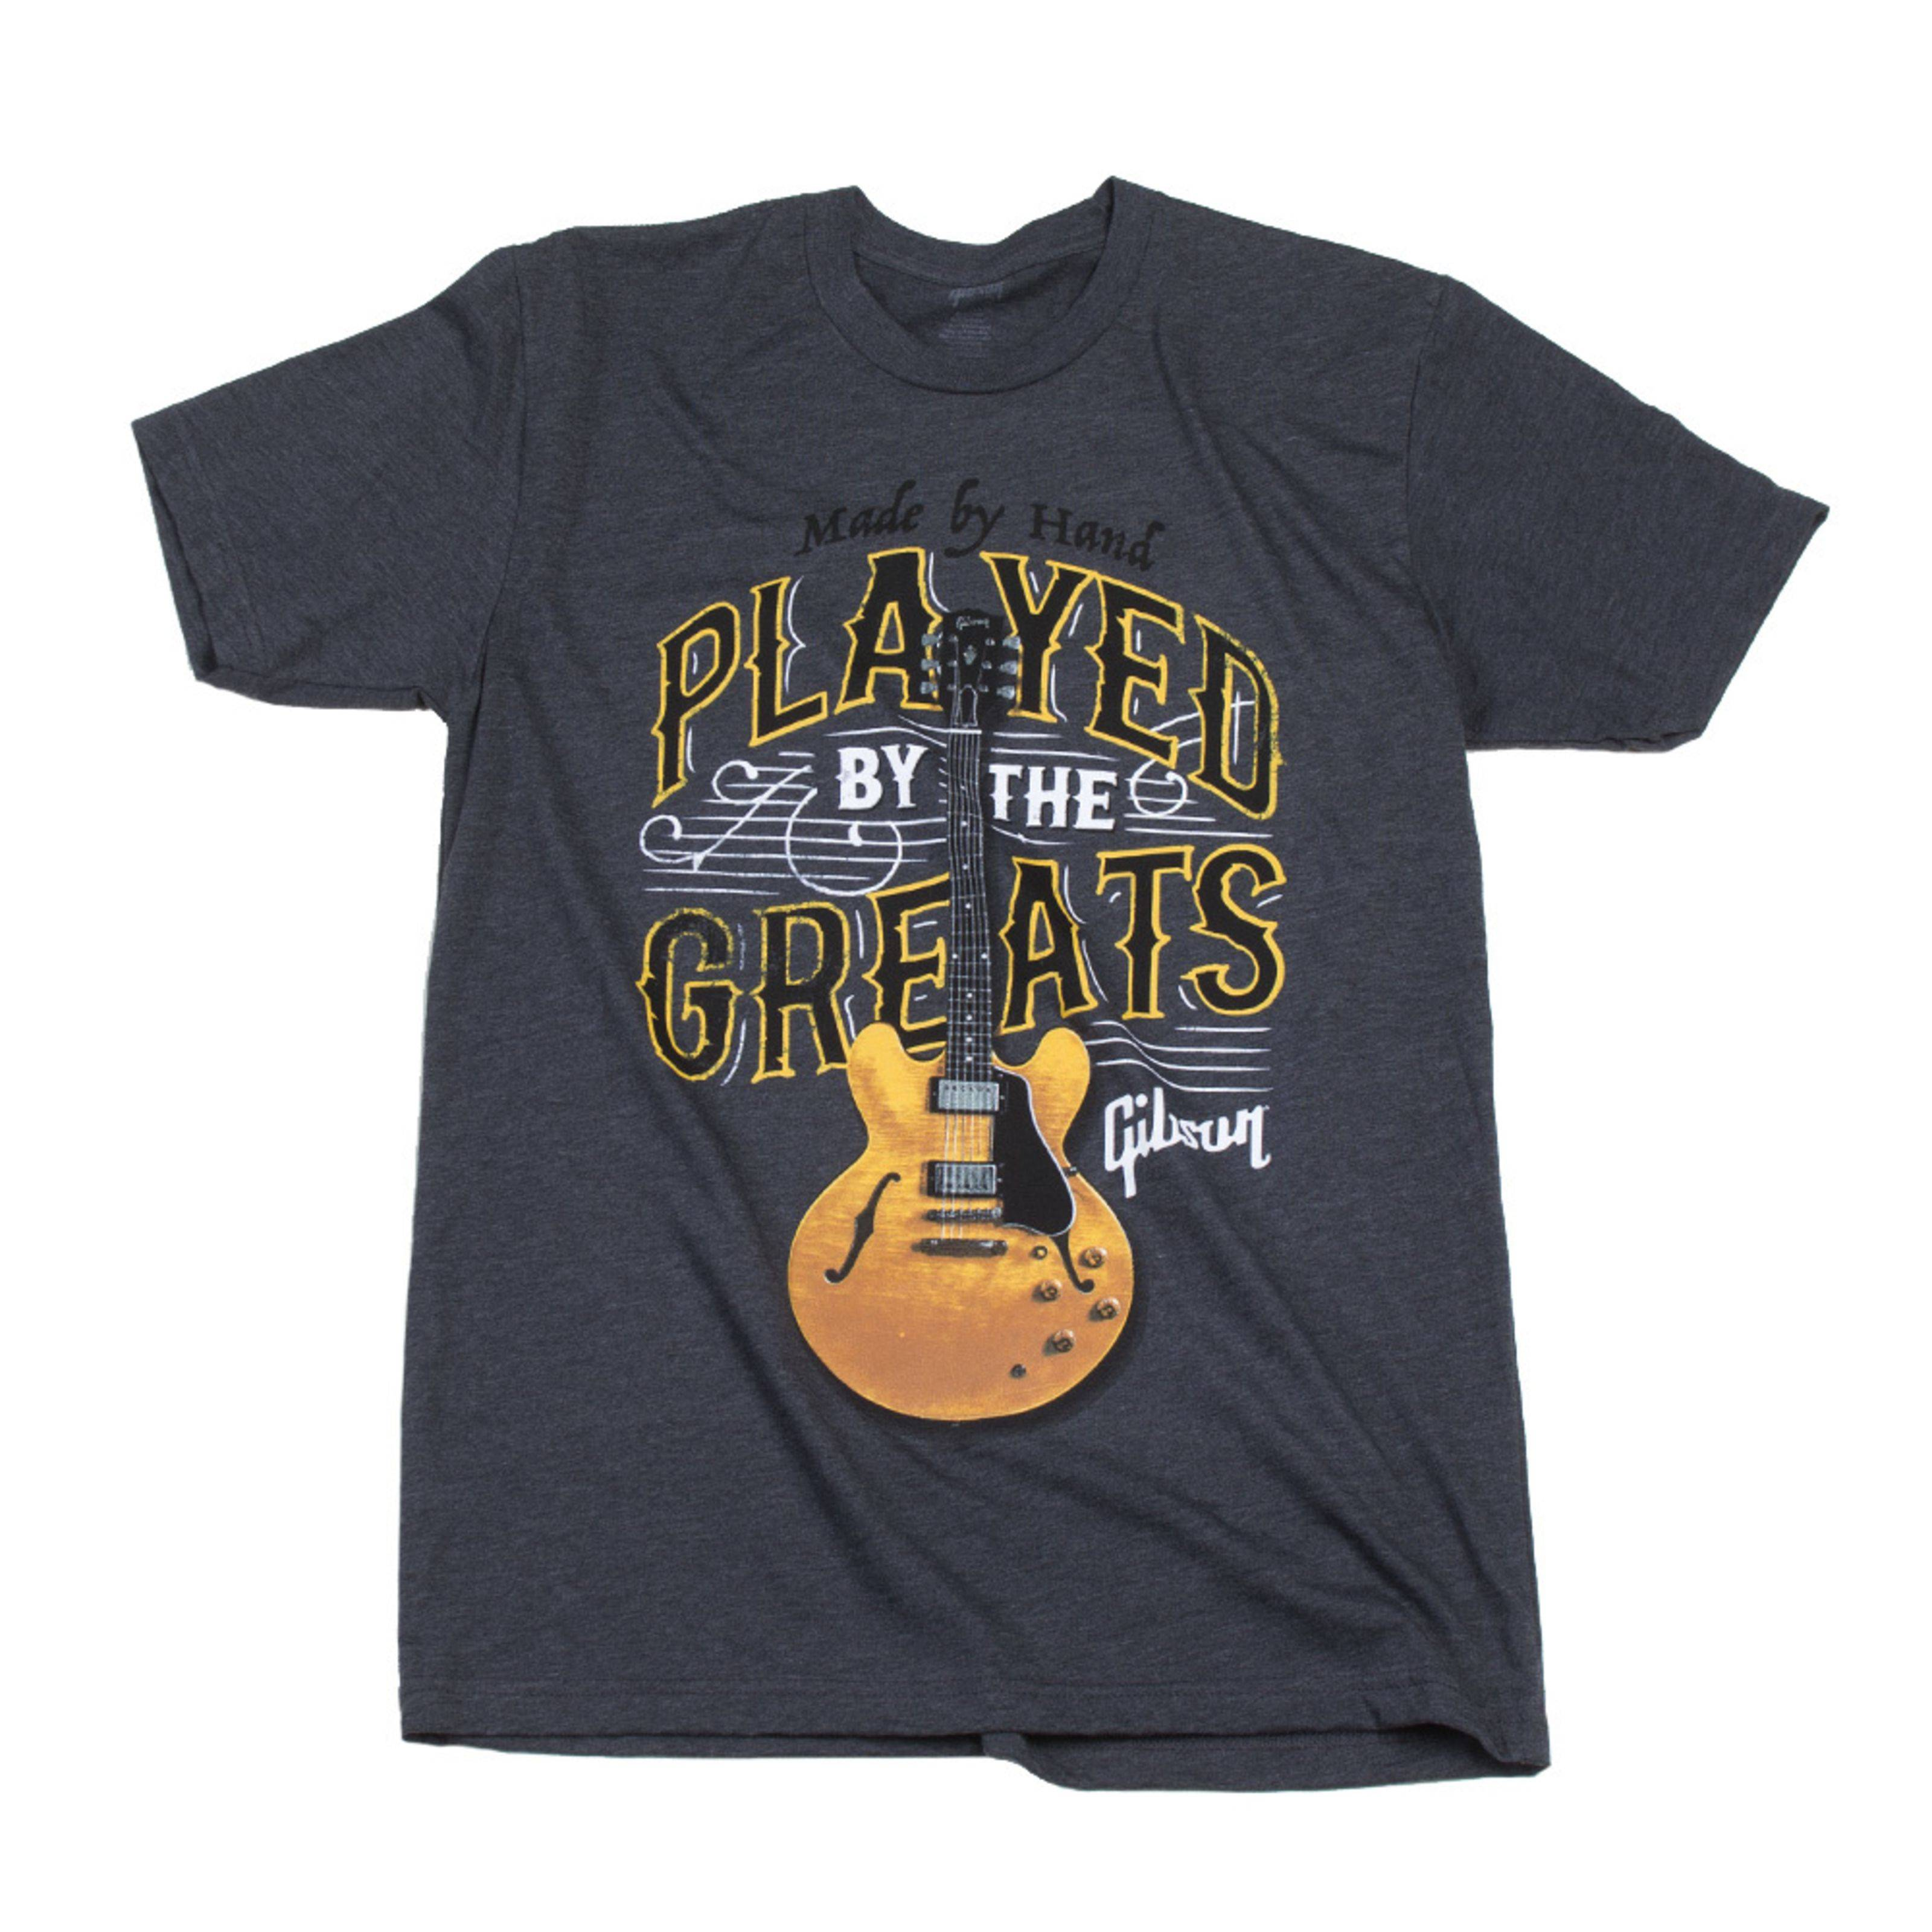 Gibson Played By The Greats T-Shirt XL